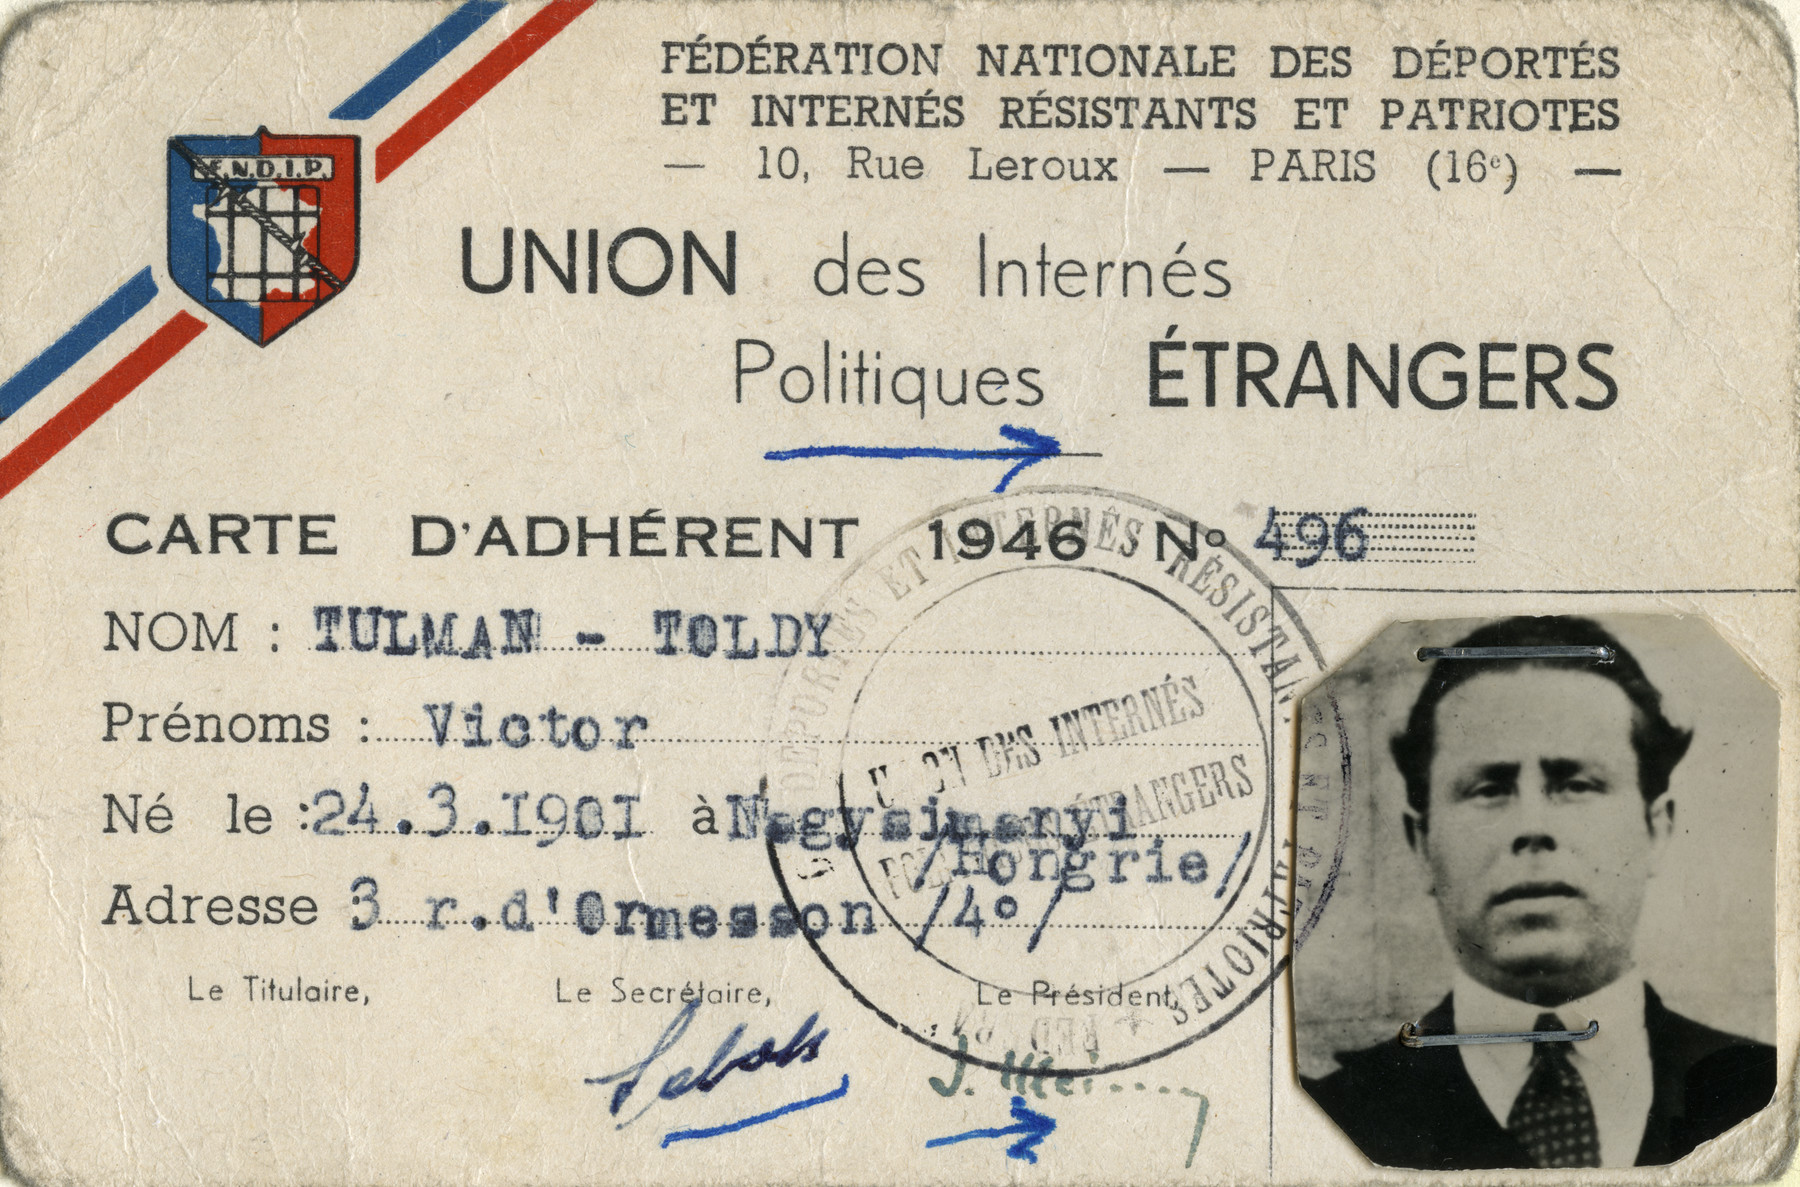 Identification card for Victor Tulman-Toldy issued by the National Federation of Deportees, Internees and Resisters and Patriots,